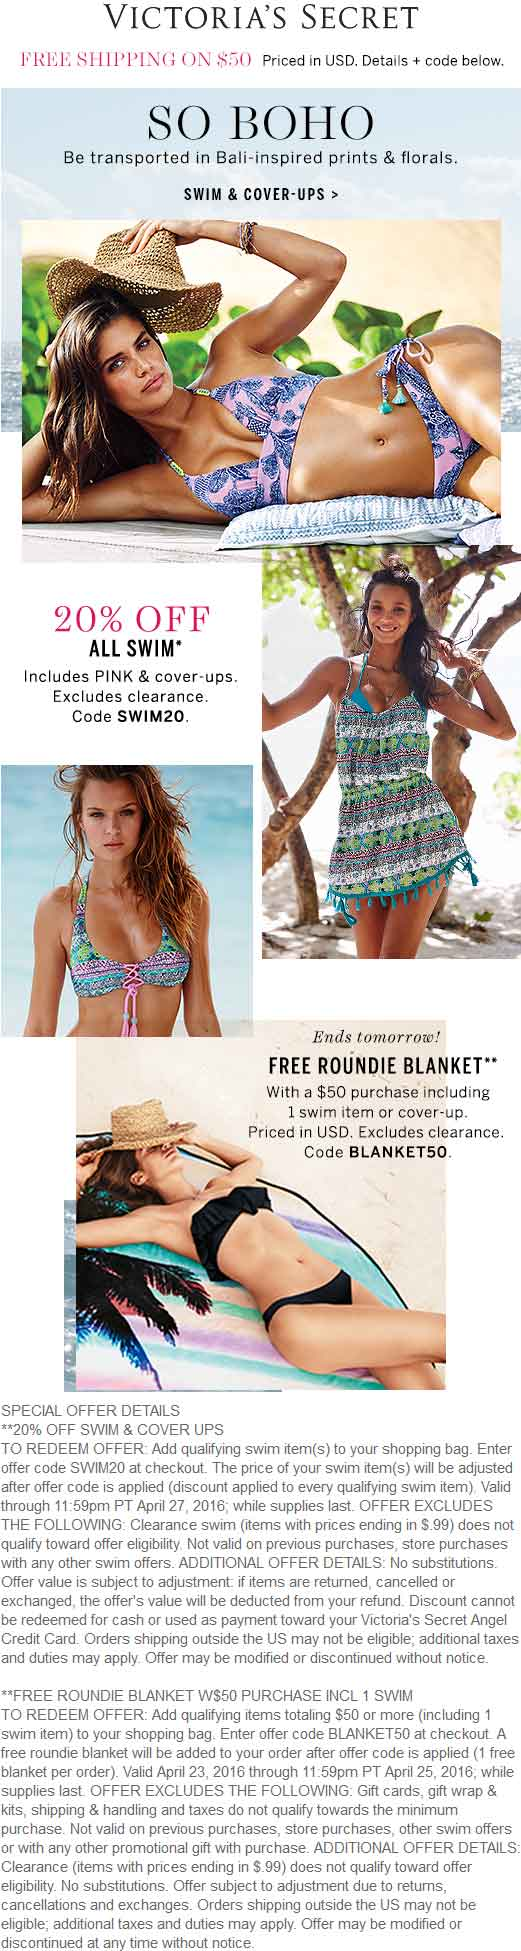 Victorias Secret Coupon October 2016 Free roundie blanket with $50 spent & 20% off swim today at Victorias Secret, or online via promo code BLANKET50